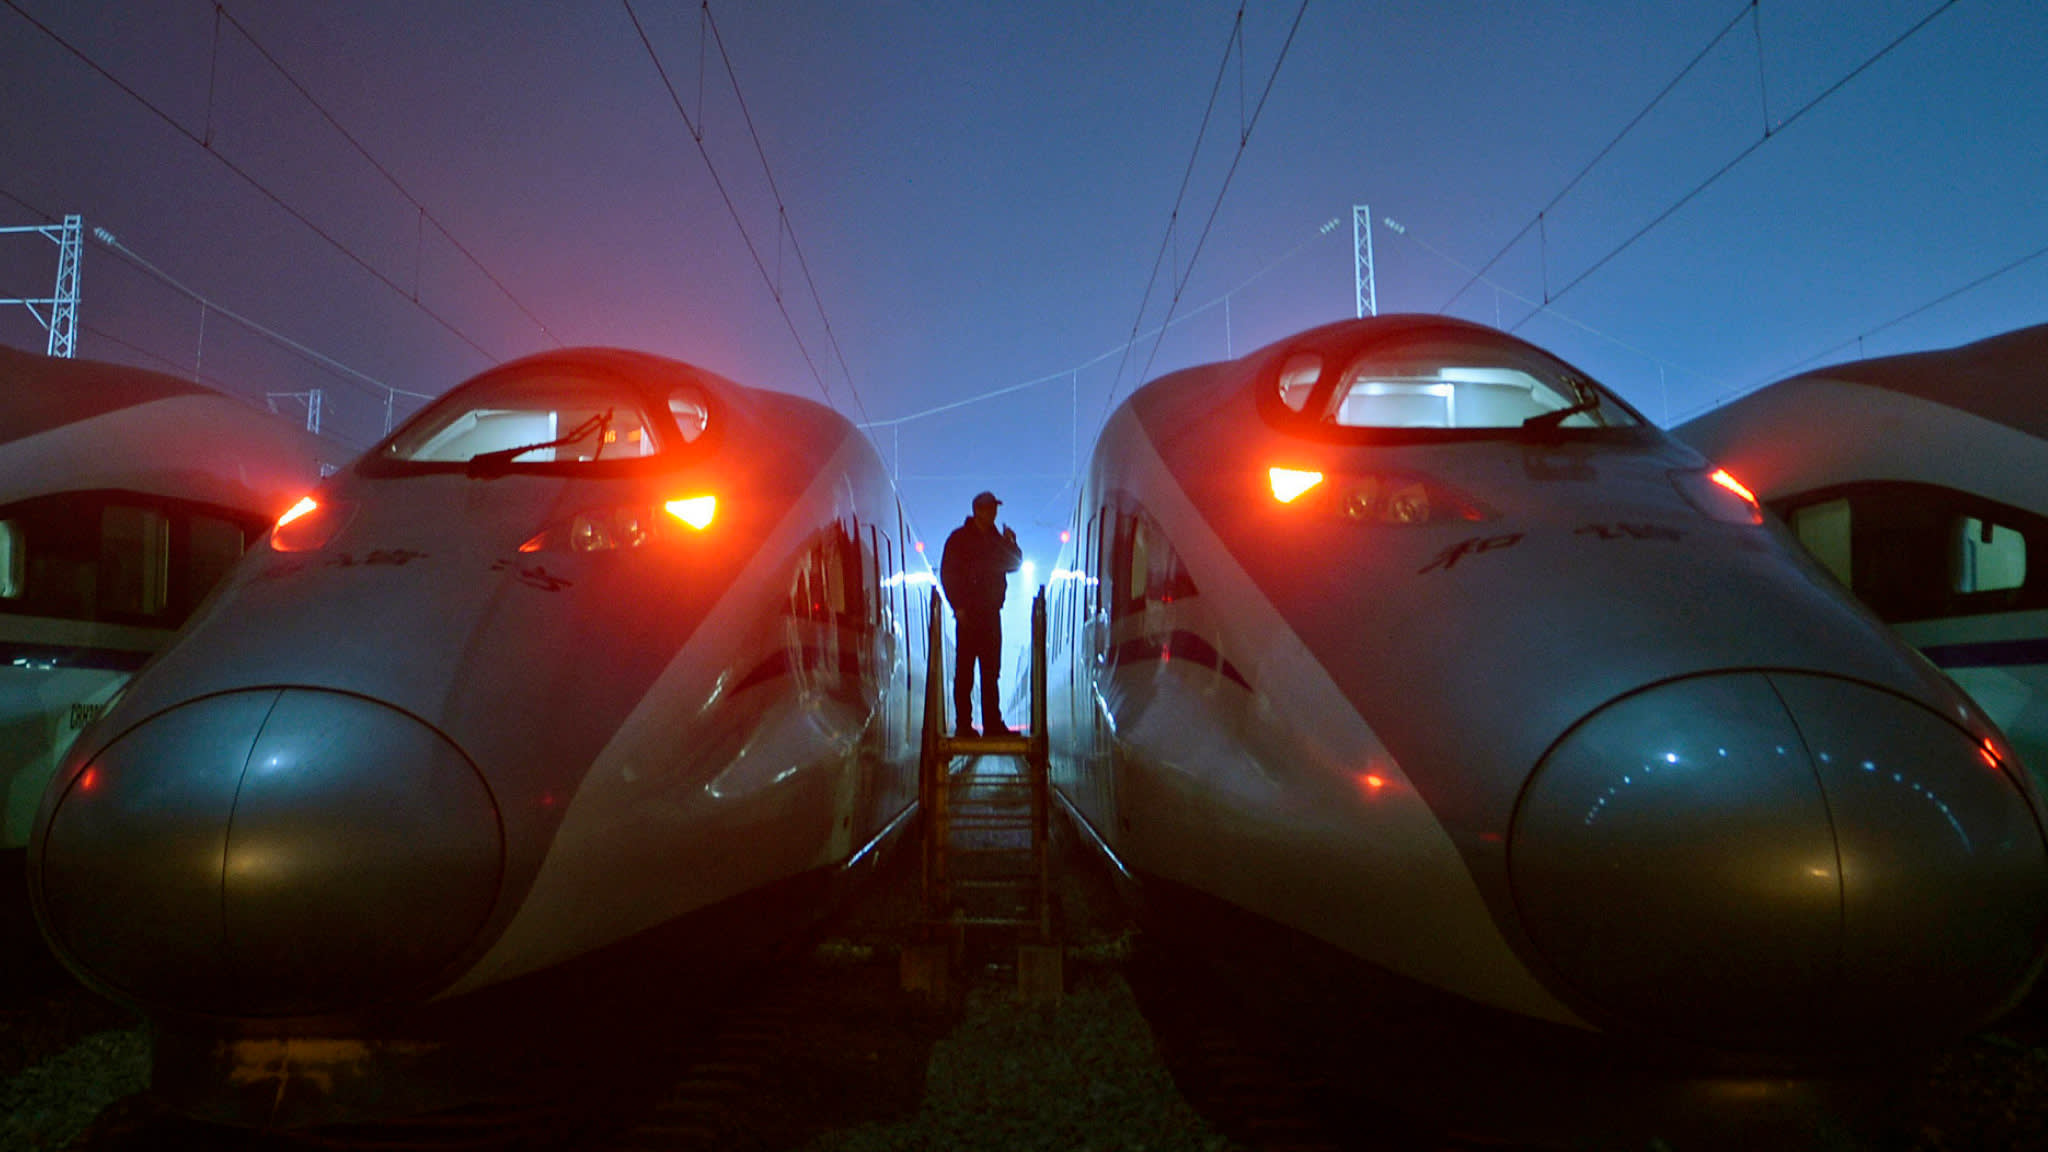 China's high-speed rail and fears of fast track to debt